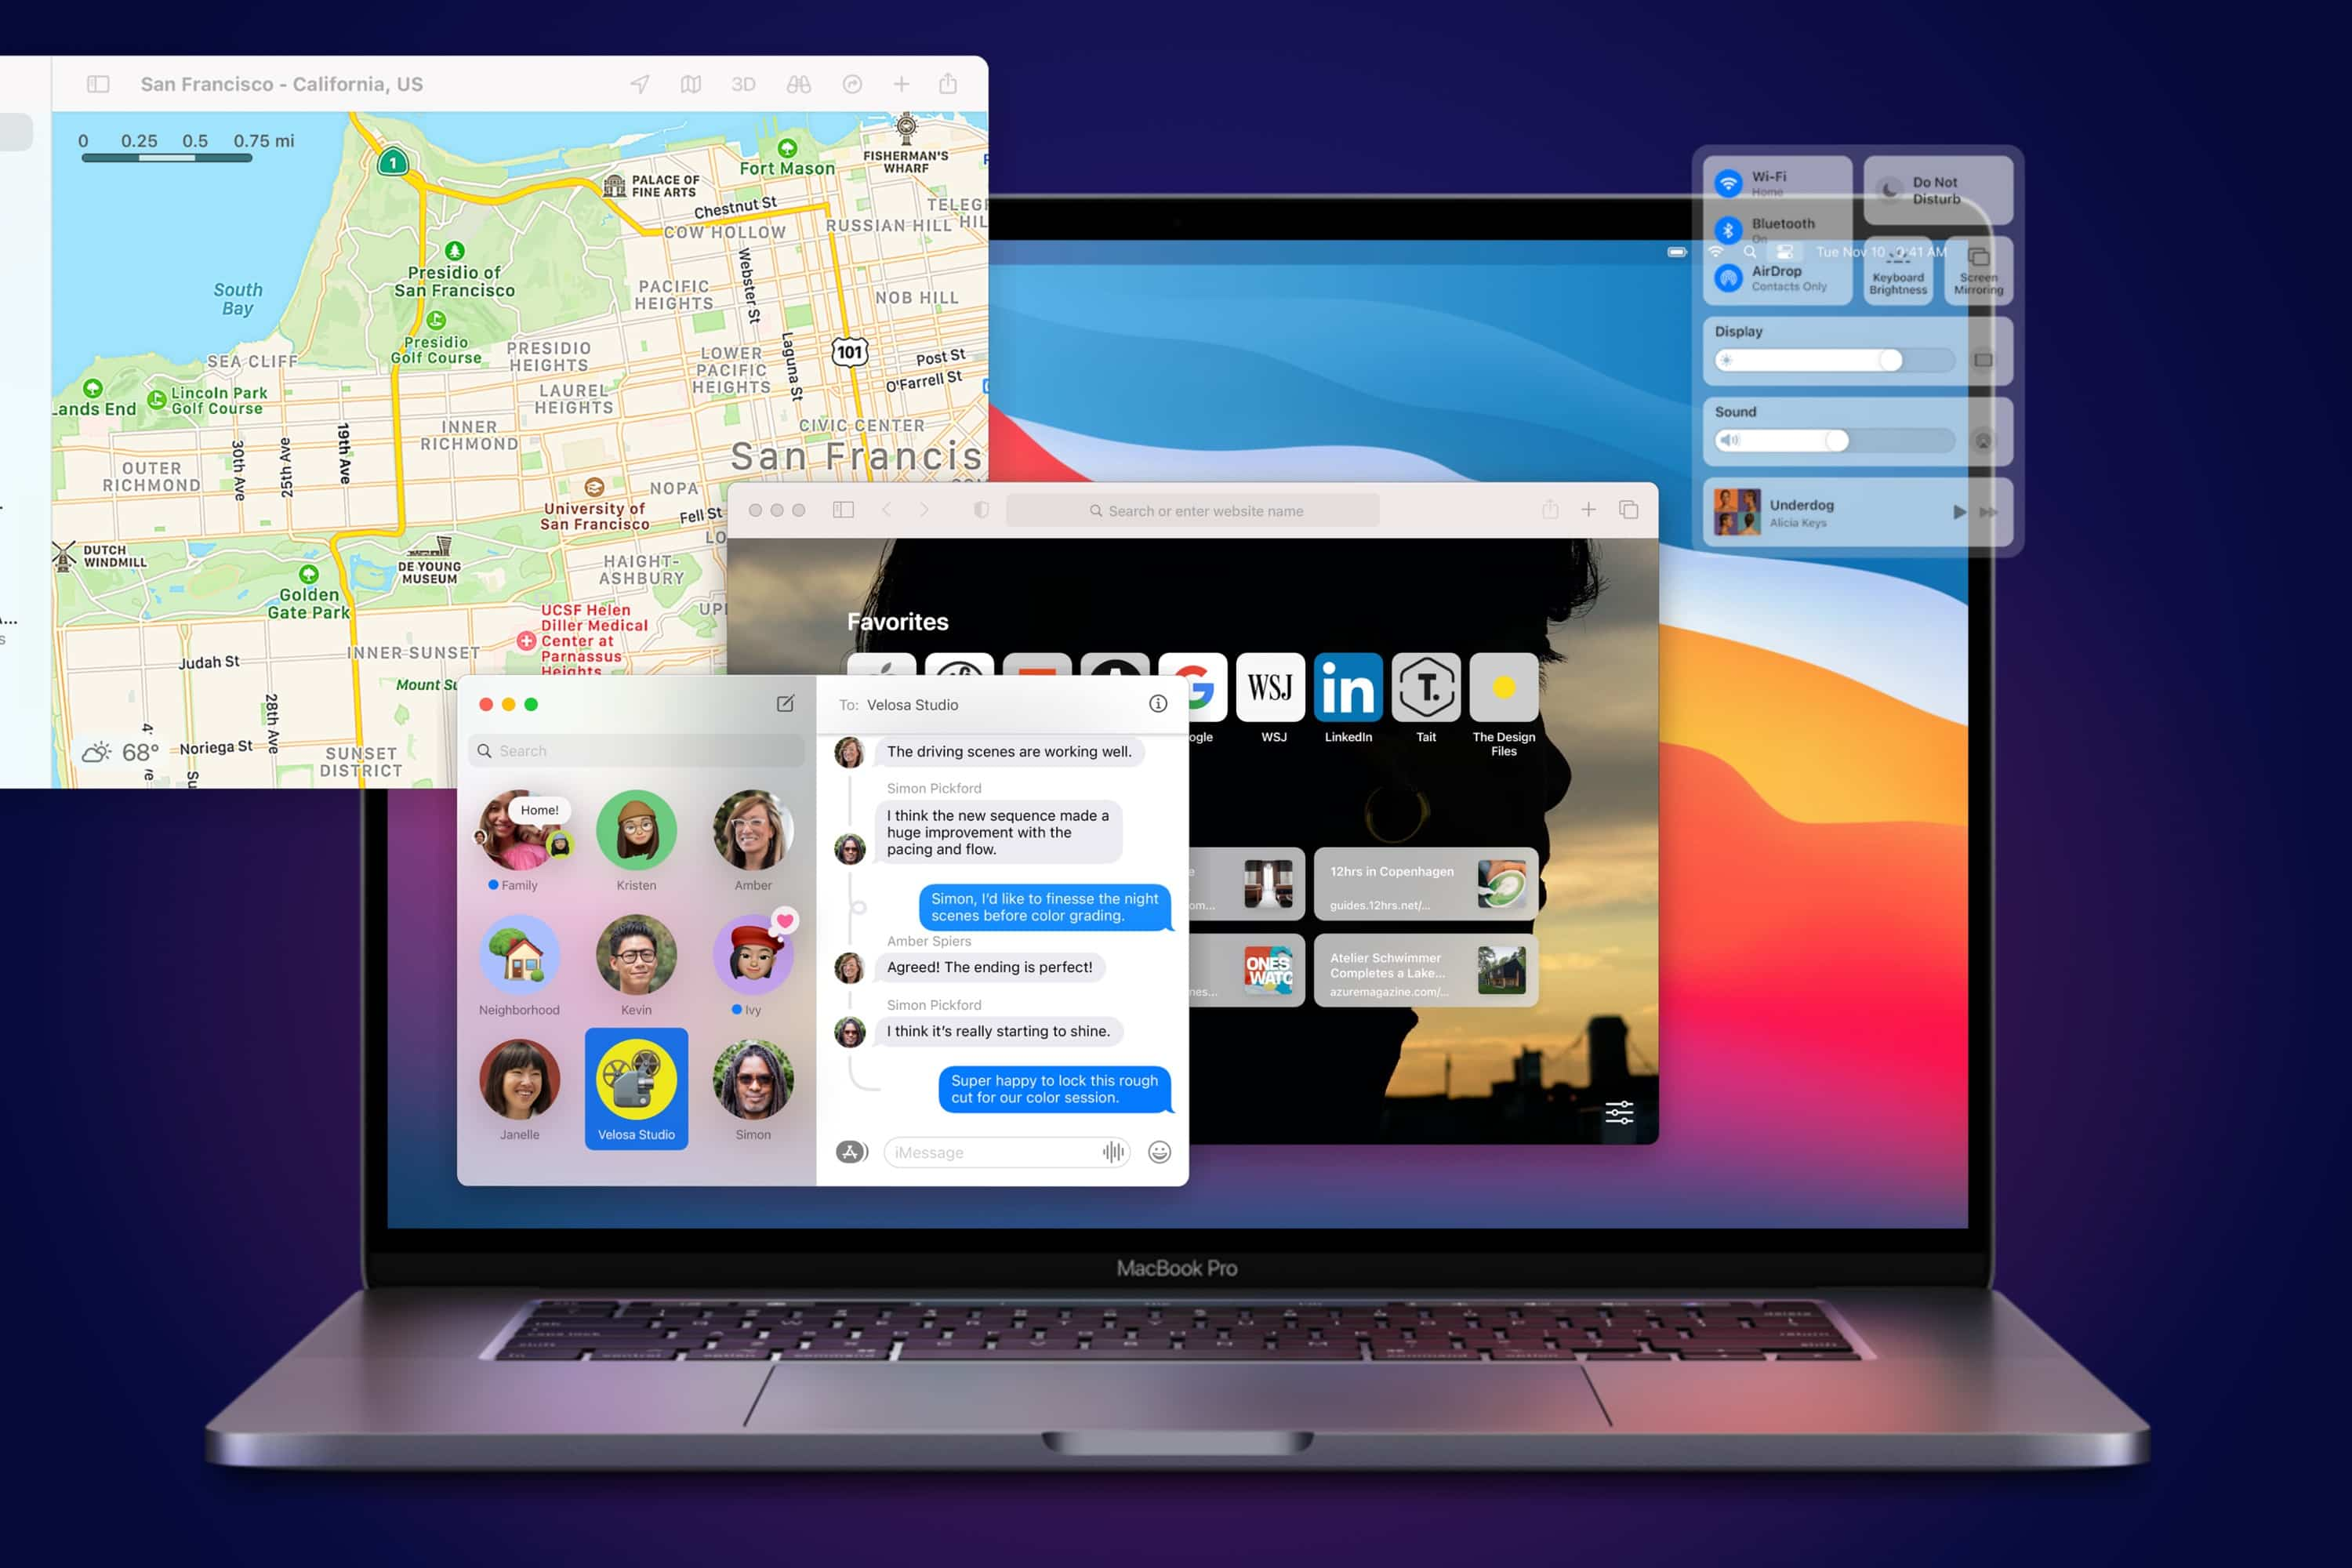 macos-big-sur-to-stop-getting-standalone-update-packages-20201218-1